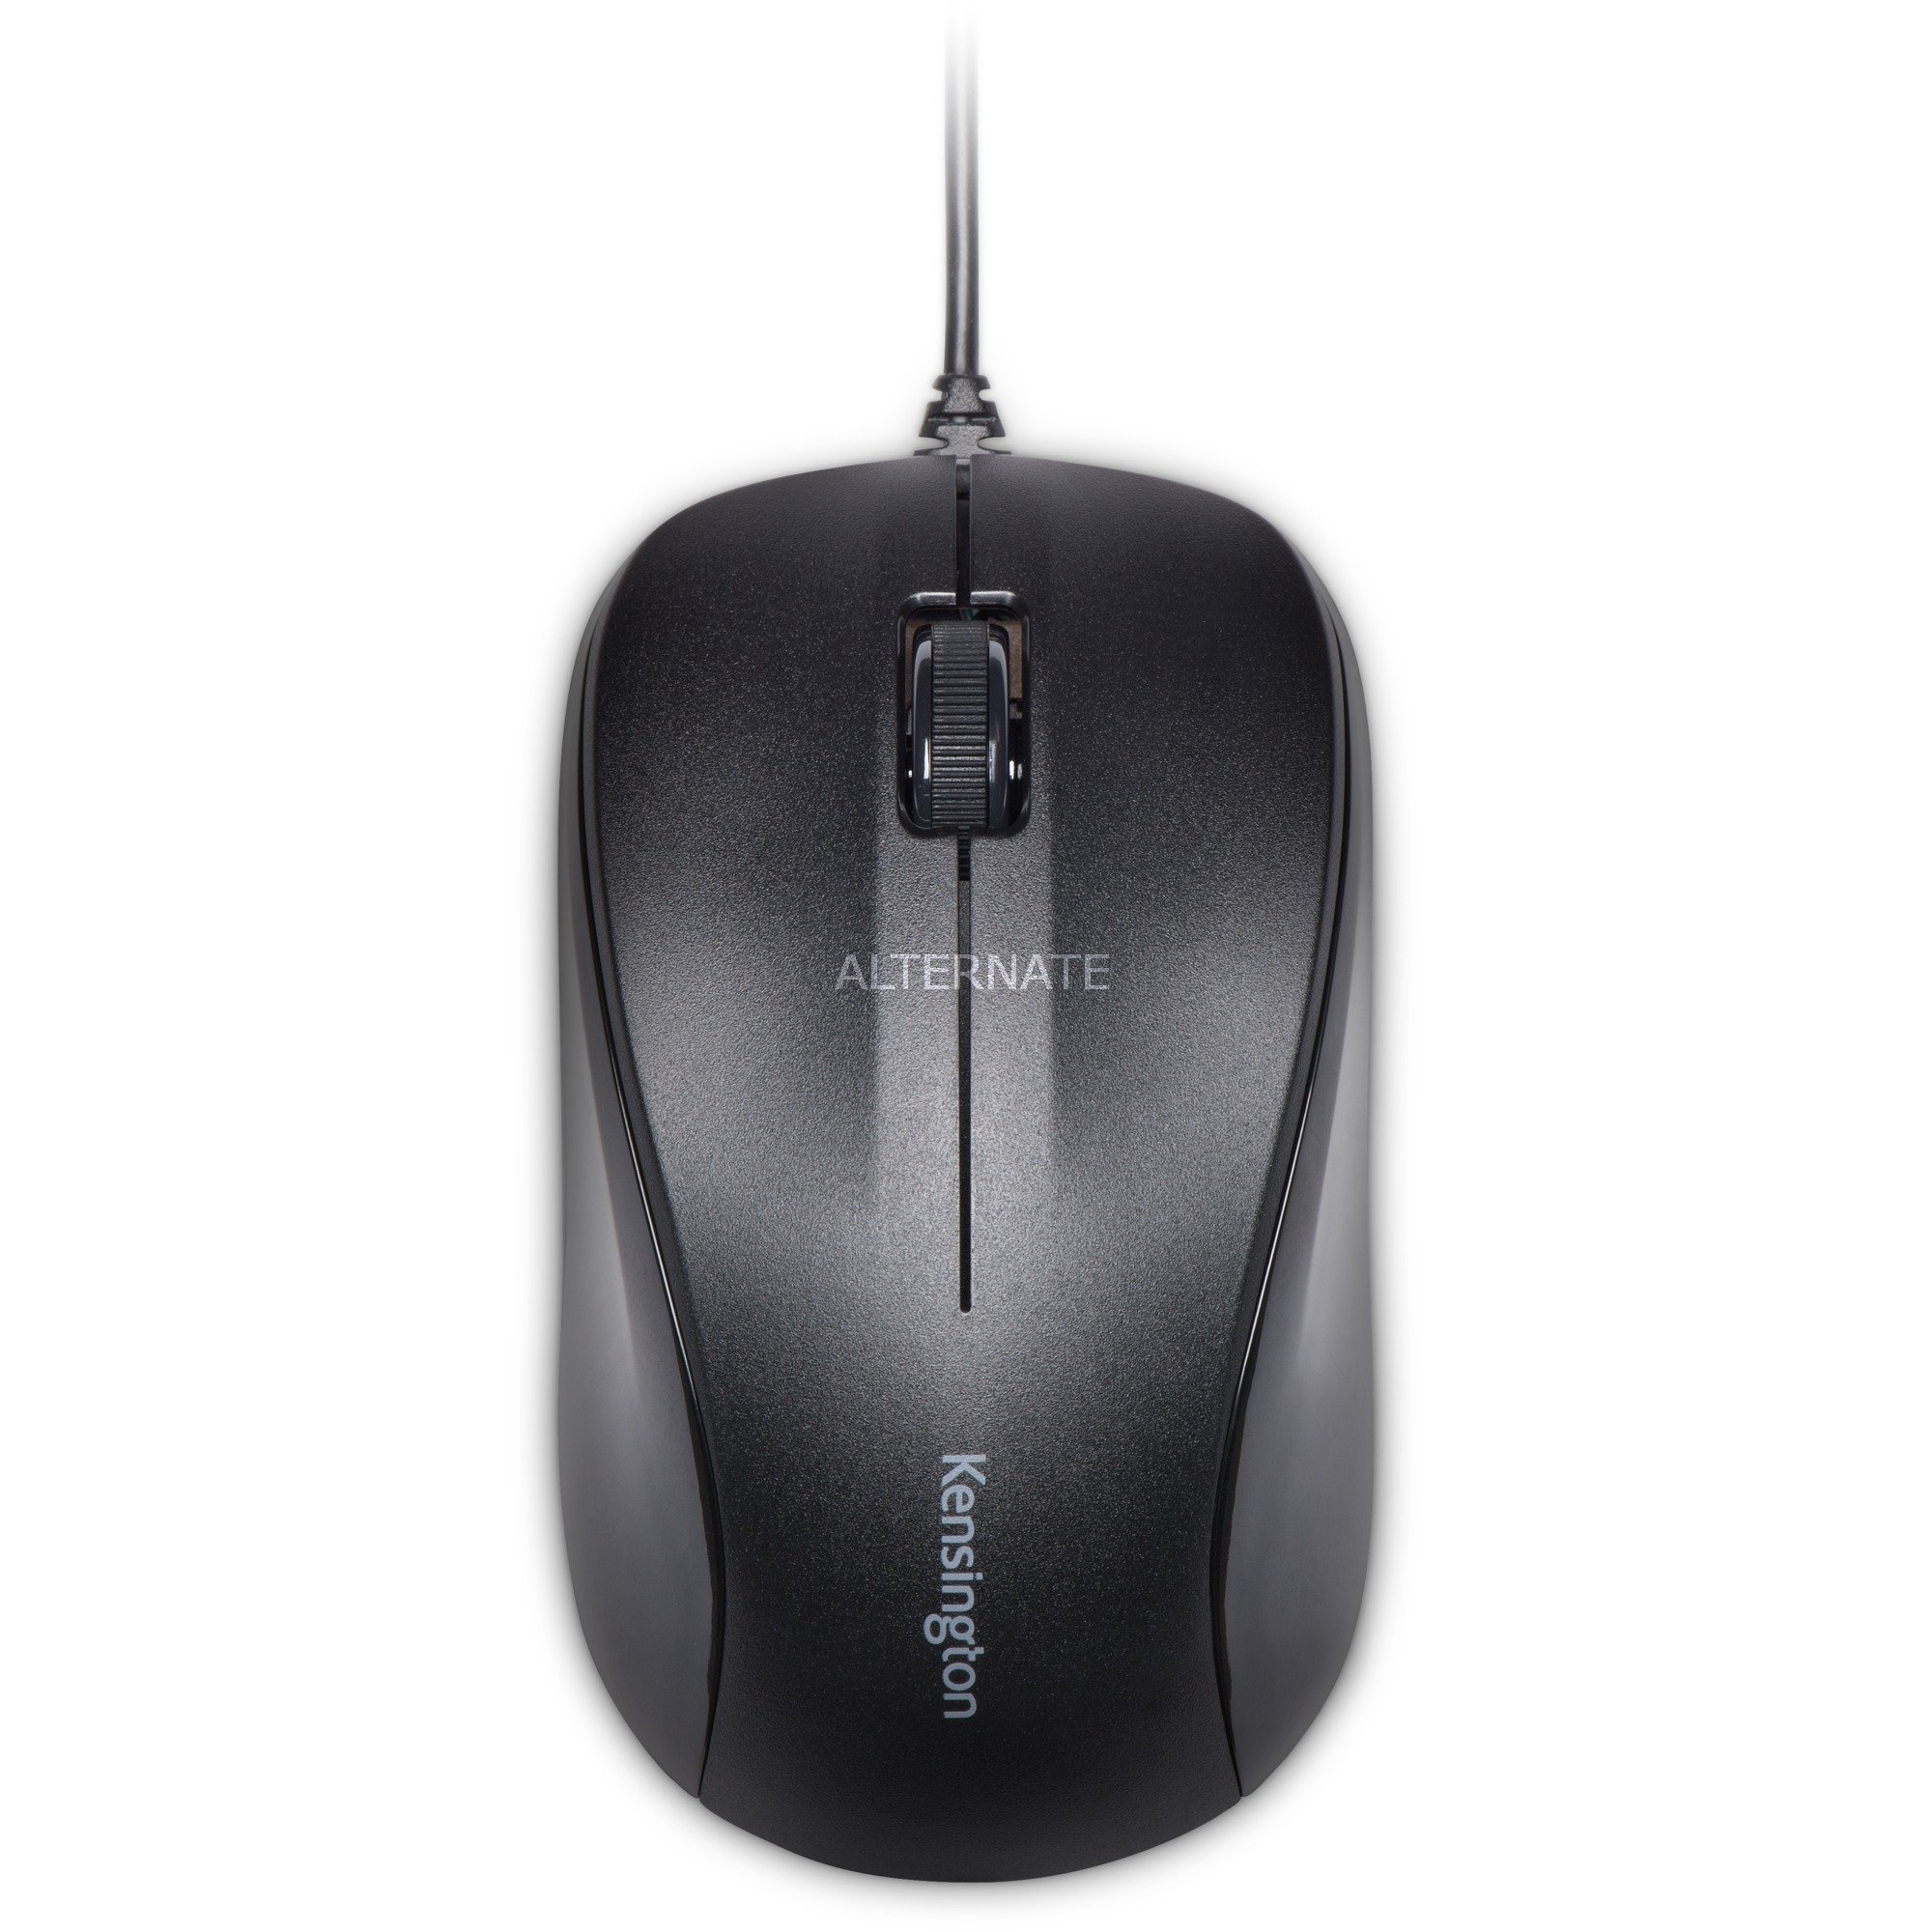 Valu Wired Mouse, Souris